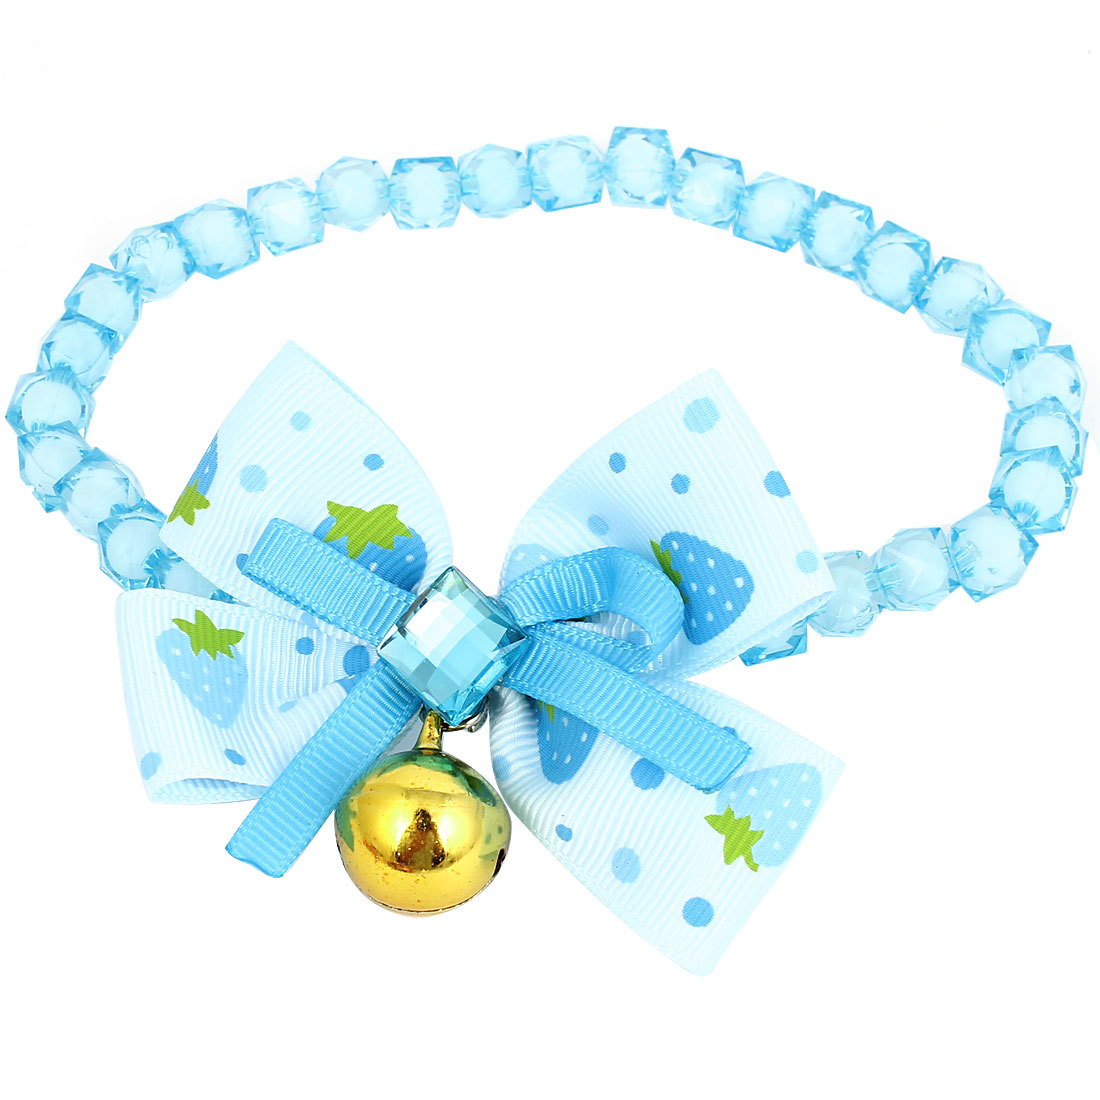 Metal Bell Pendant Bowtie Accent Pet Dog Faceted Beads Collar Necklace Blue White M